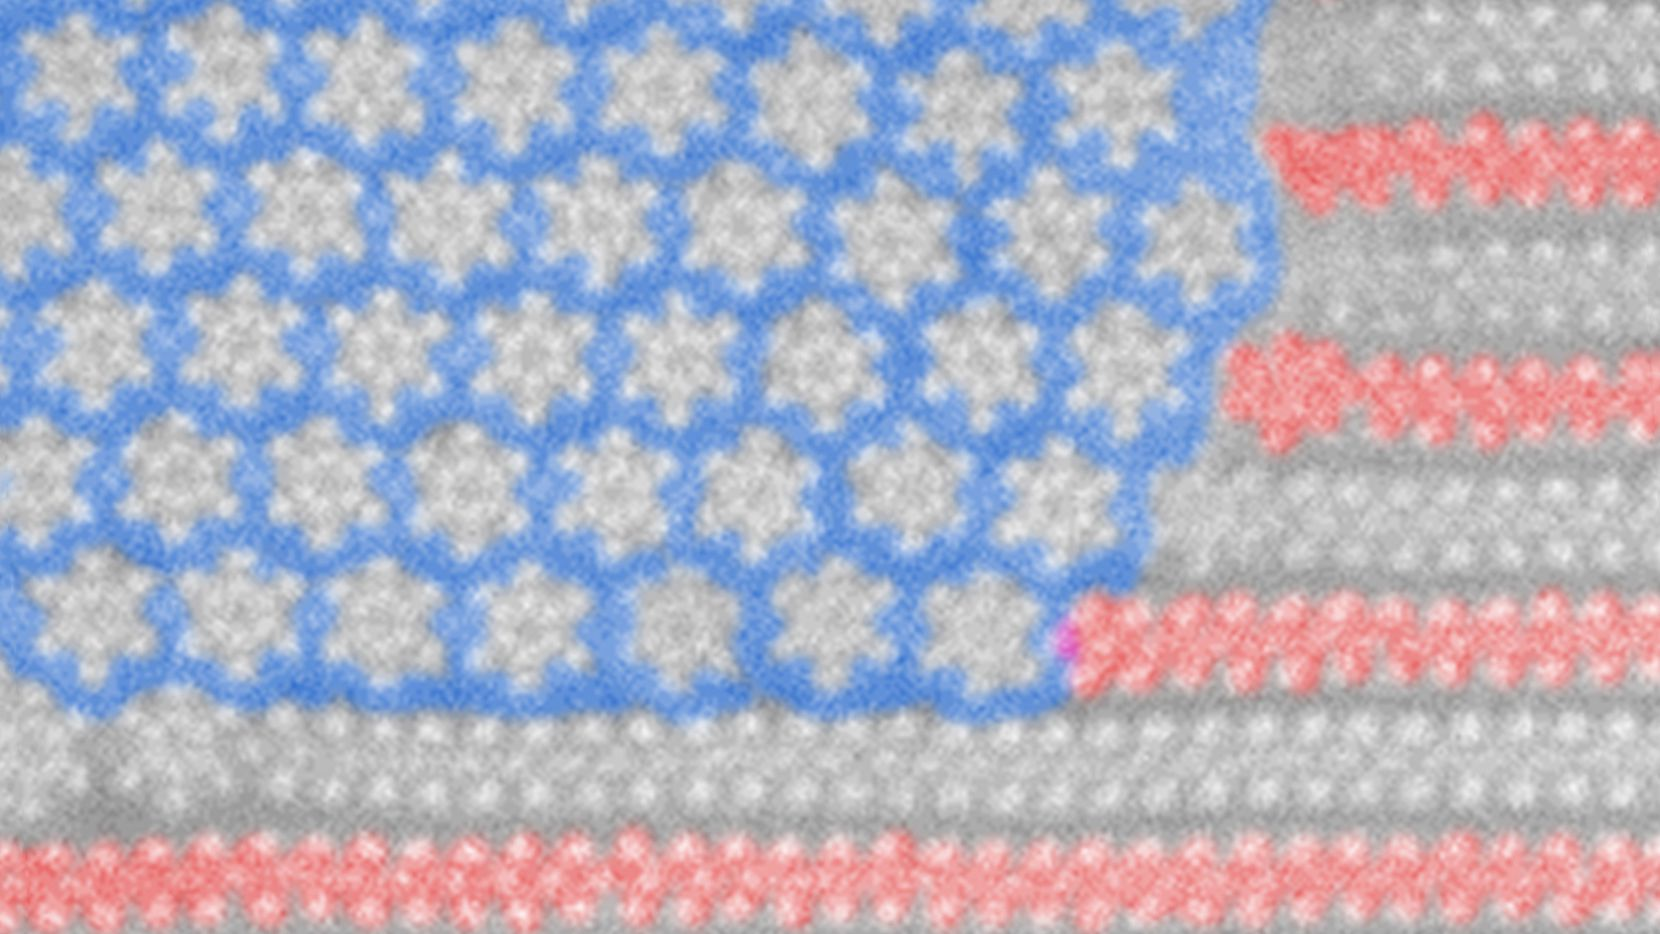 """This microscopic nanoflag pattern emerged as sheets of the """"stripe"""" material -- molybdenum ditelluride -- were heated to about 450 degrees Celsius, at which point its atoms began to rearrange and form new structures -- the """"stars"""" in this false-color image. (Courtesy UT Dallas)"""